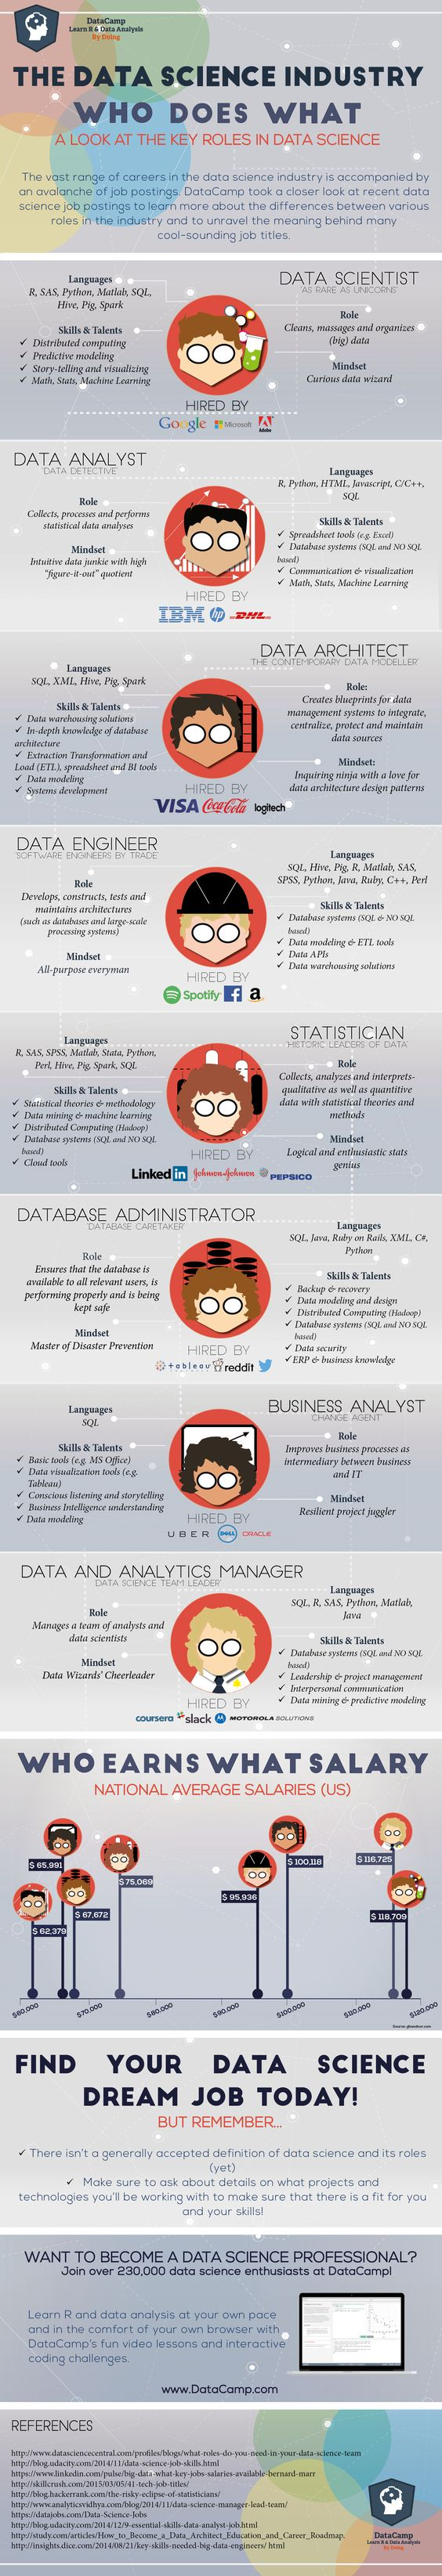 Data Science Industry Unravelled: Data science roles, skills, mindset, salaries,.. all in one infographic!